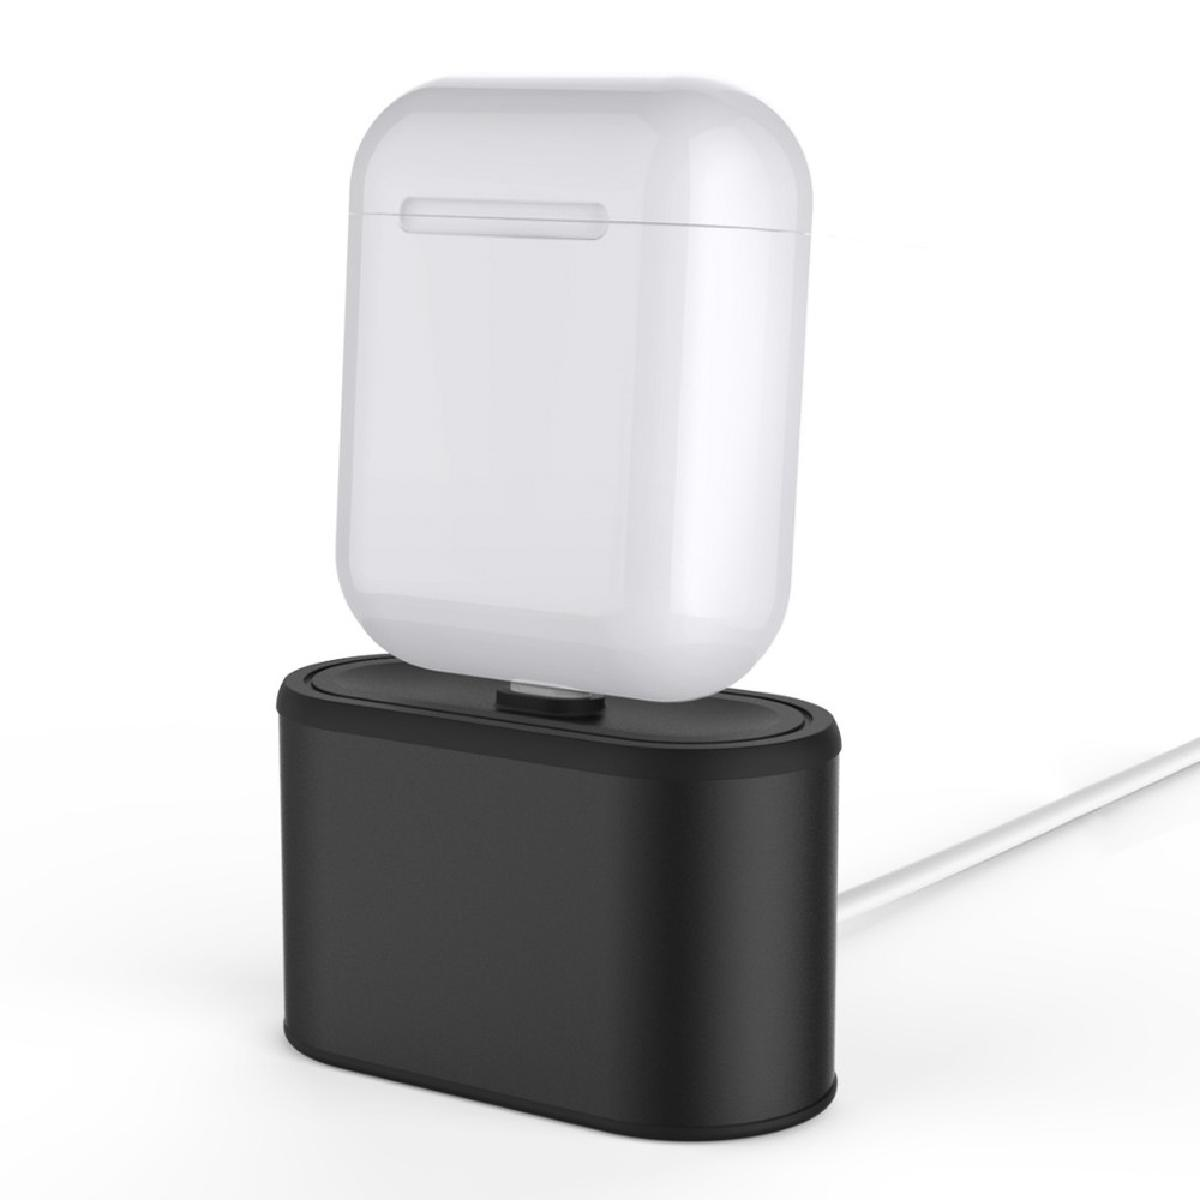 AHAStyle-Postand for AirPods Charge Stand